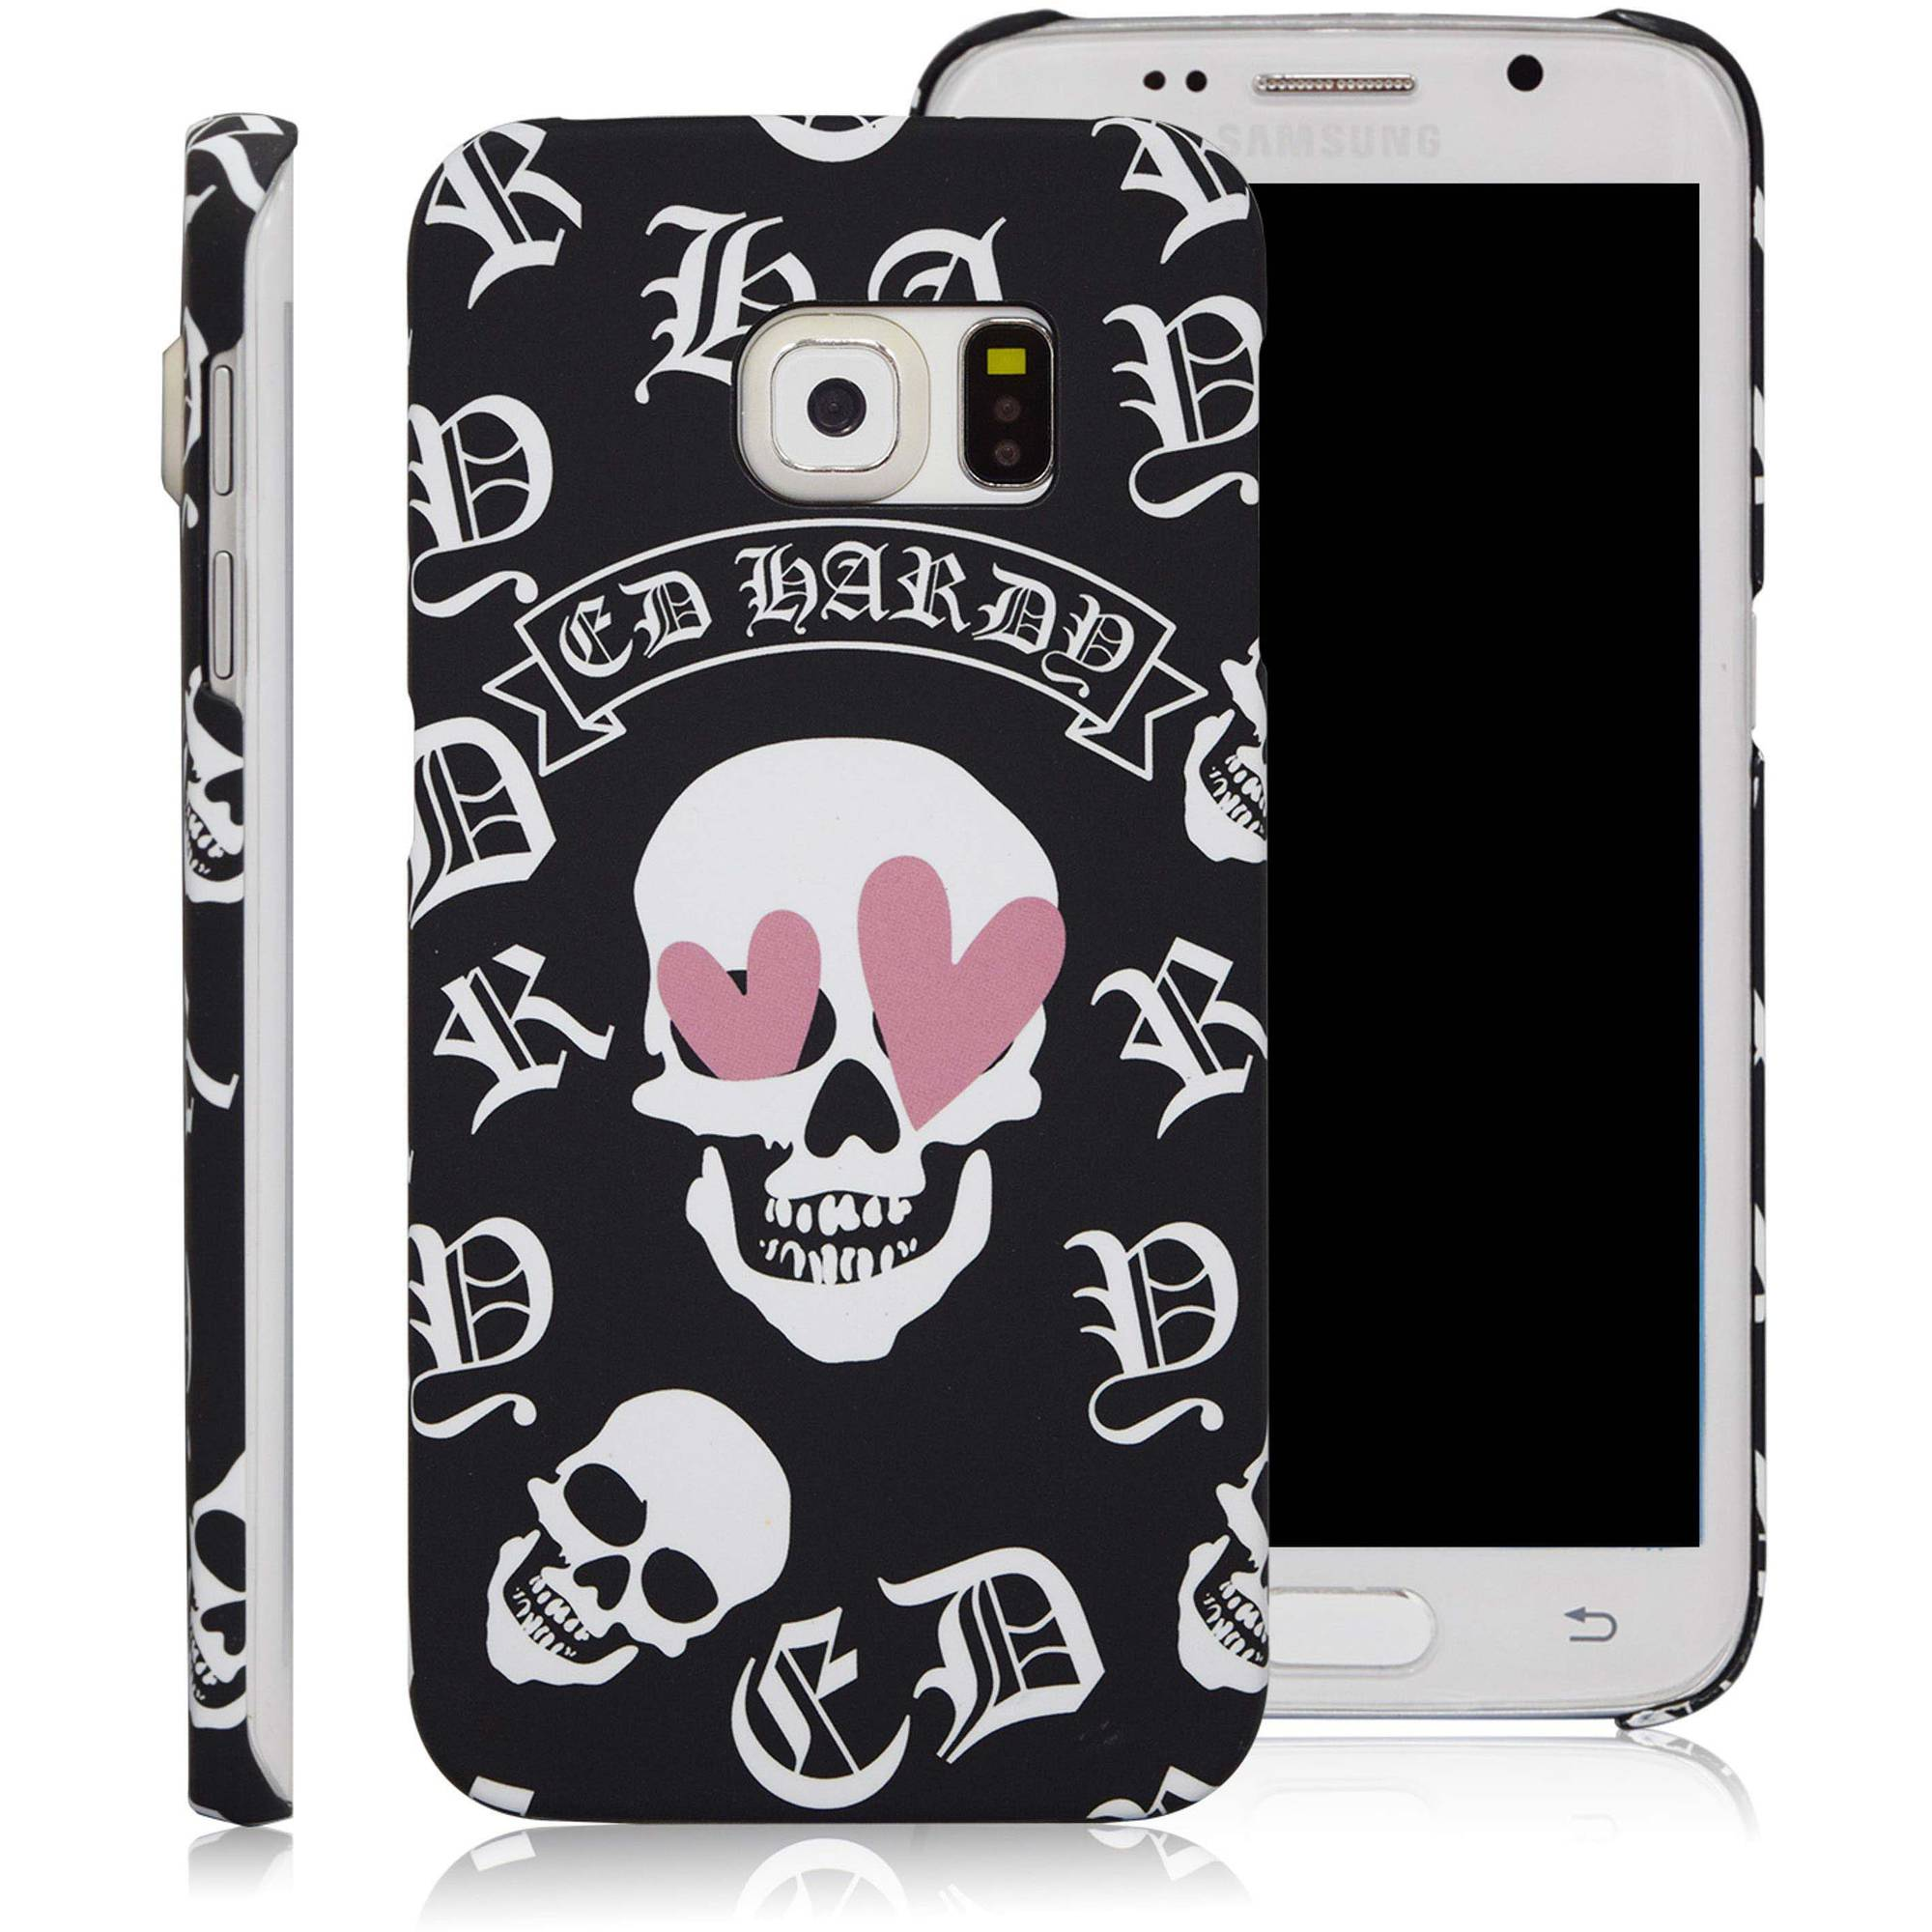 Choicee x Ed Hardy Samsung Galaxy S6 edge Case